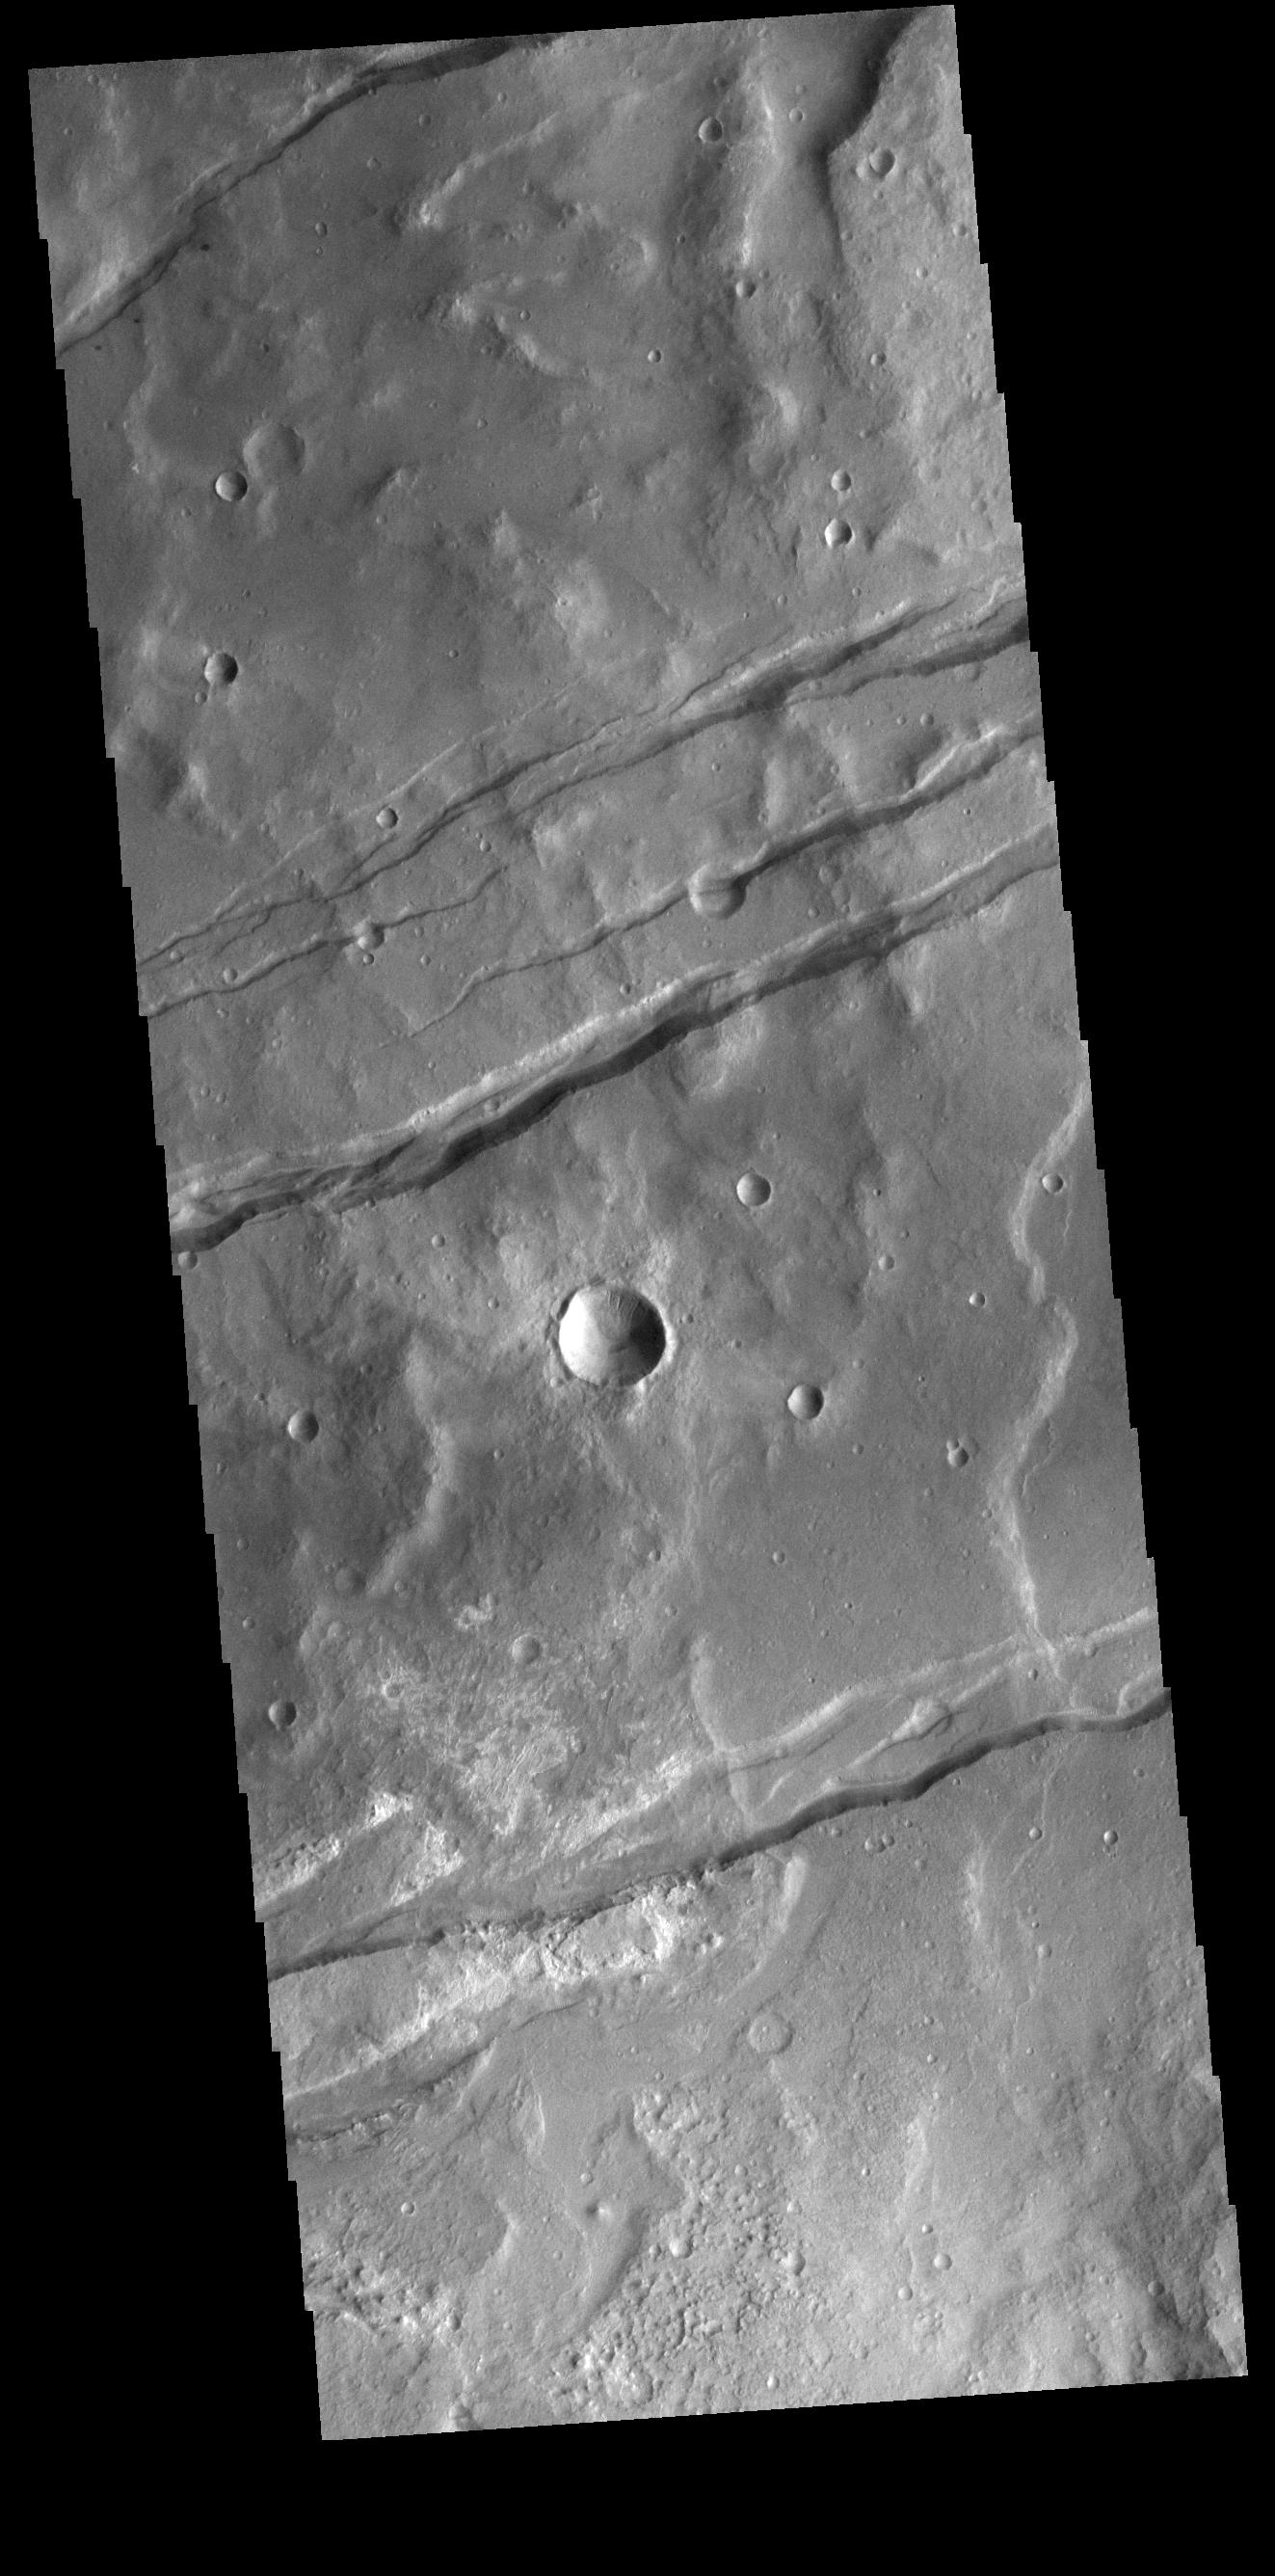 This image from NASAs Mars Odyssey shows depressions, called graben, which form by the down drop of material between two parallel faults.